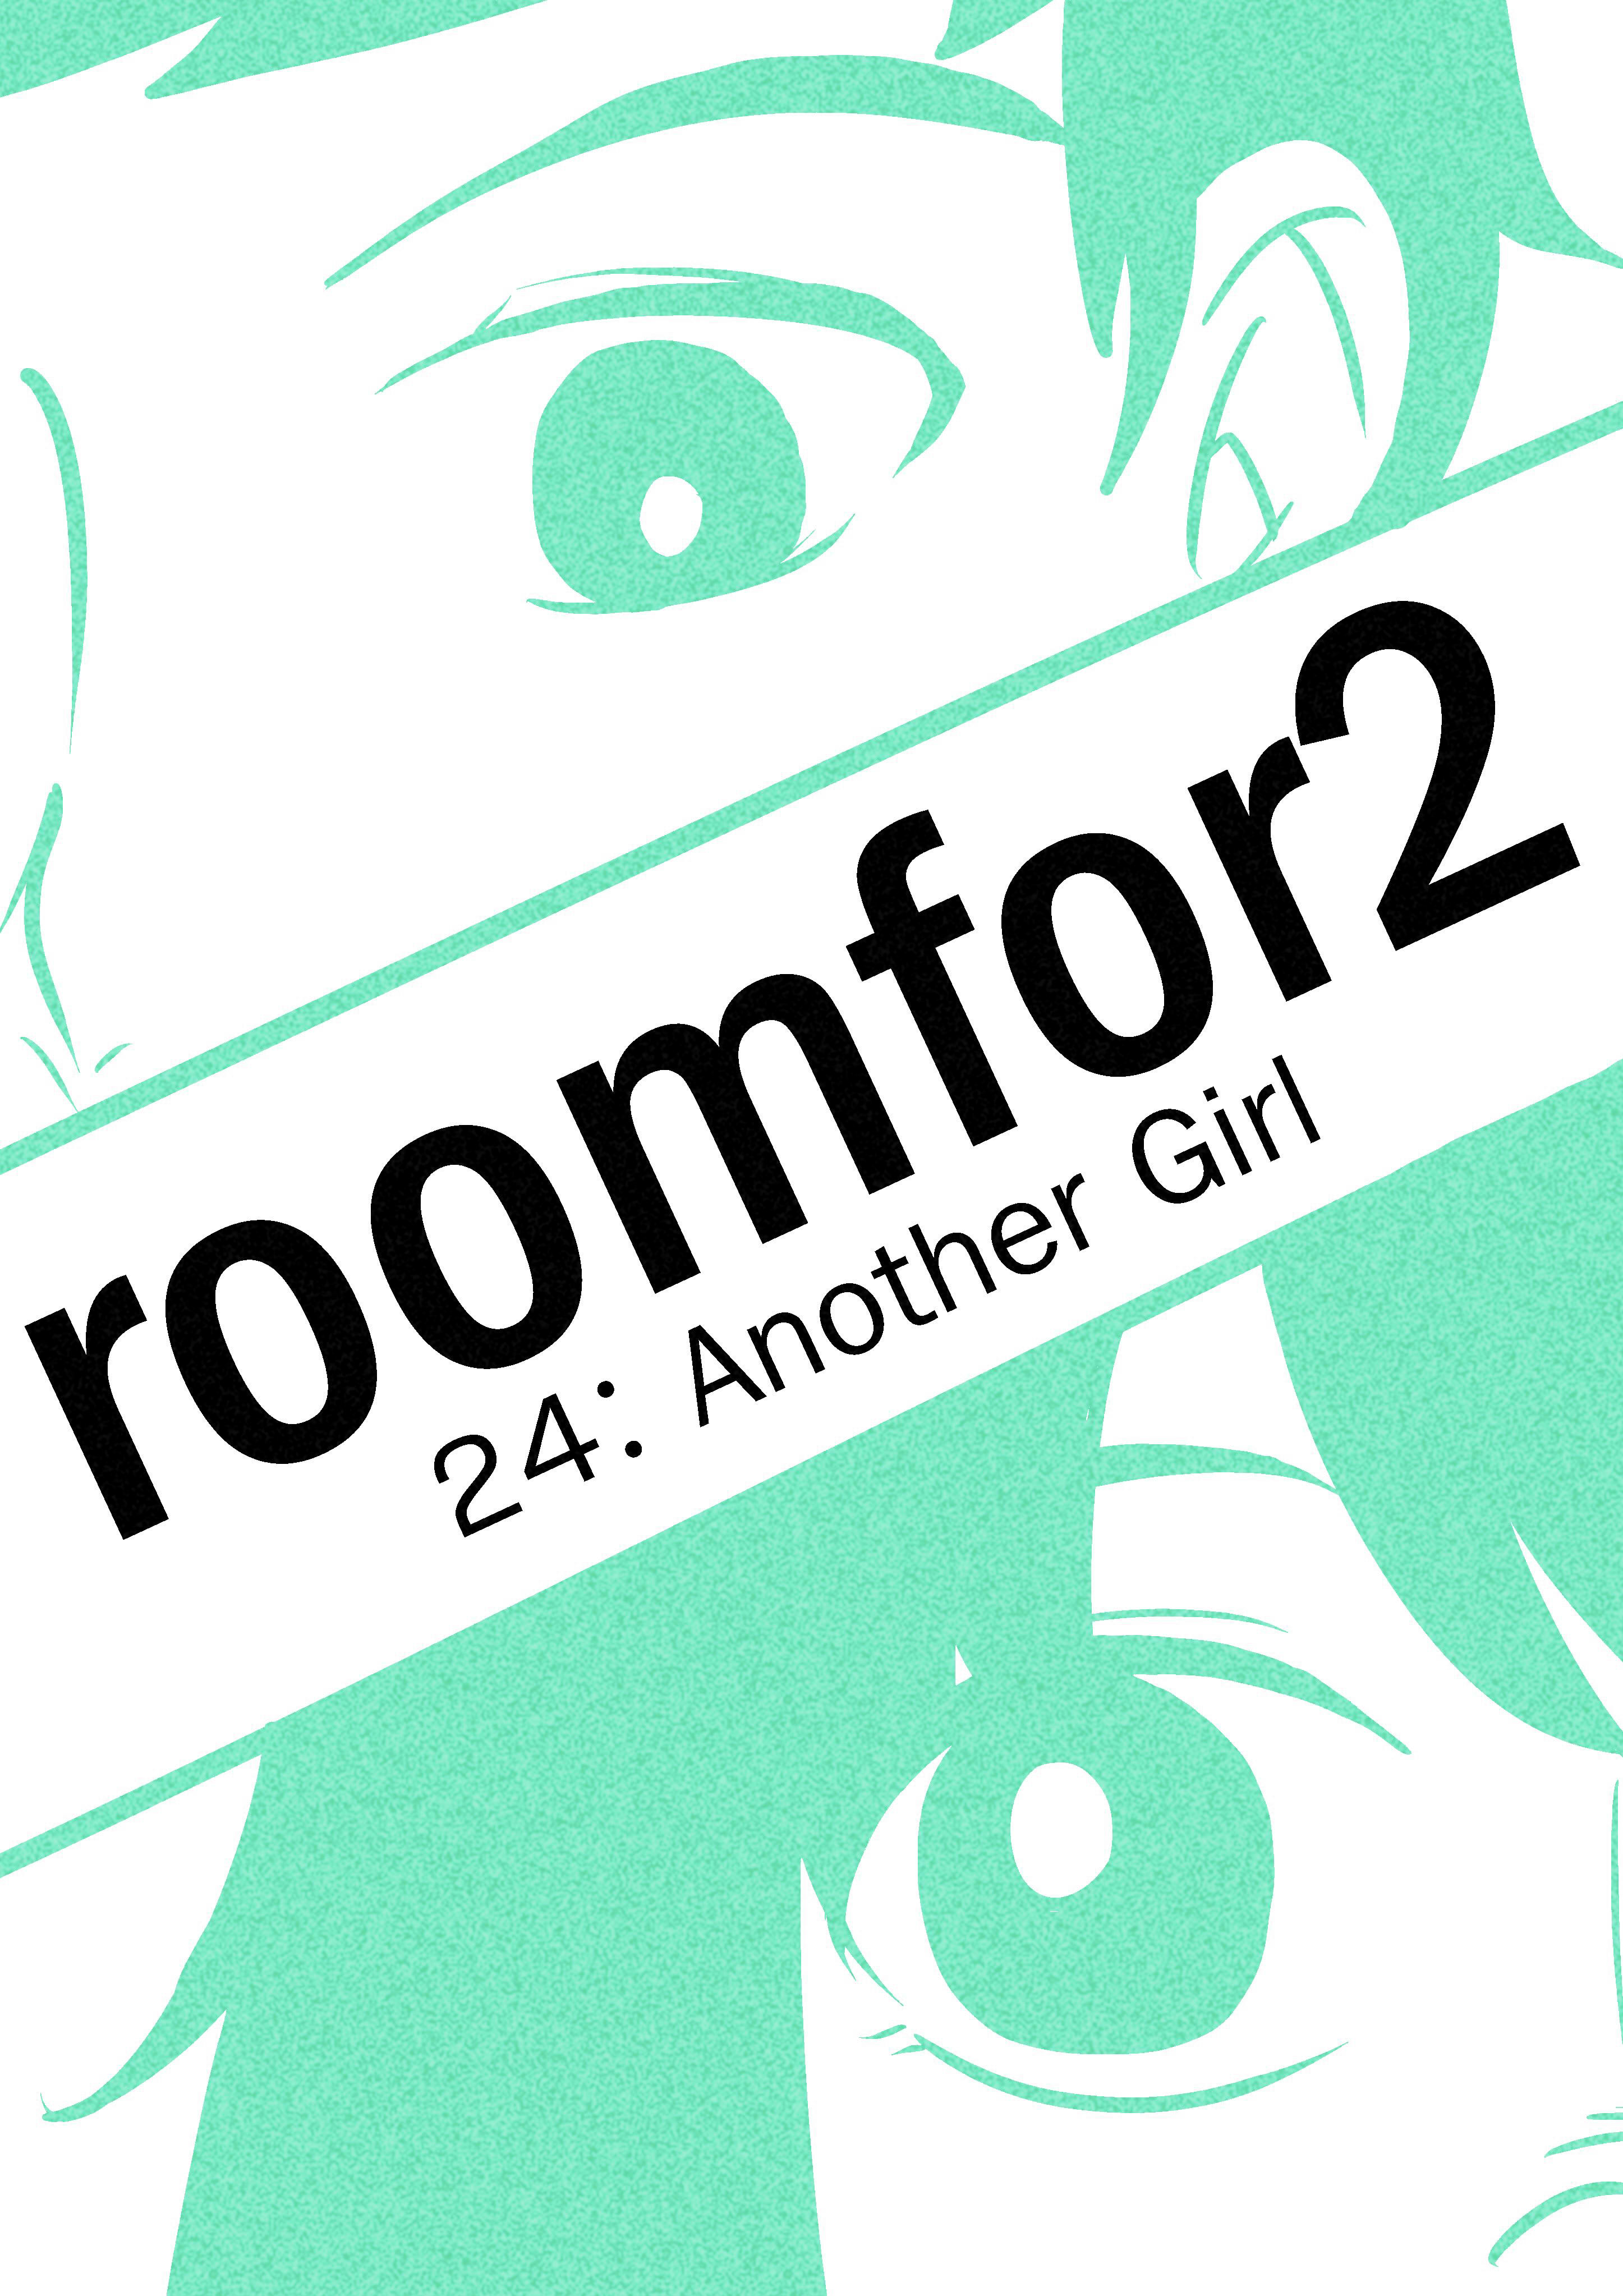 24: Another Girl